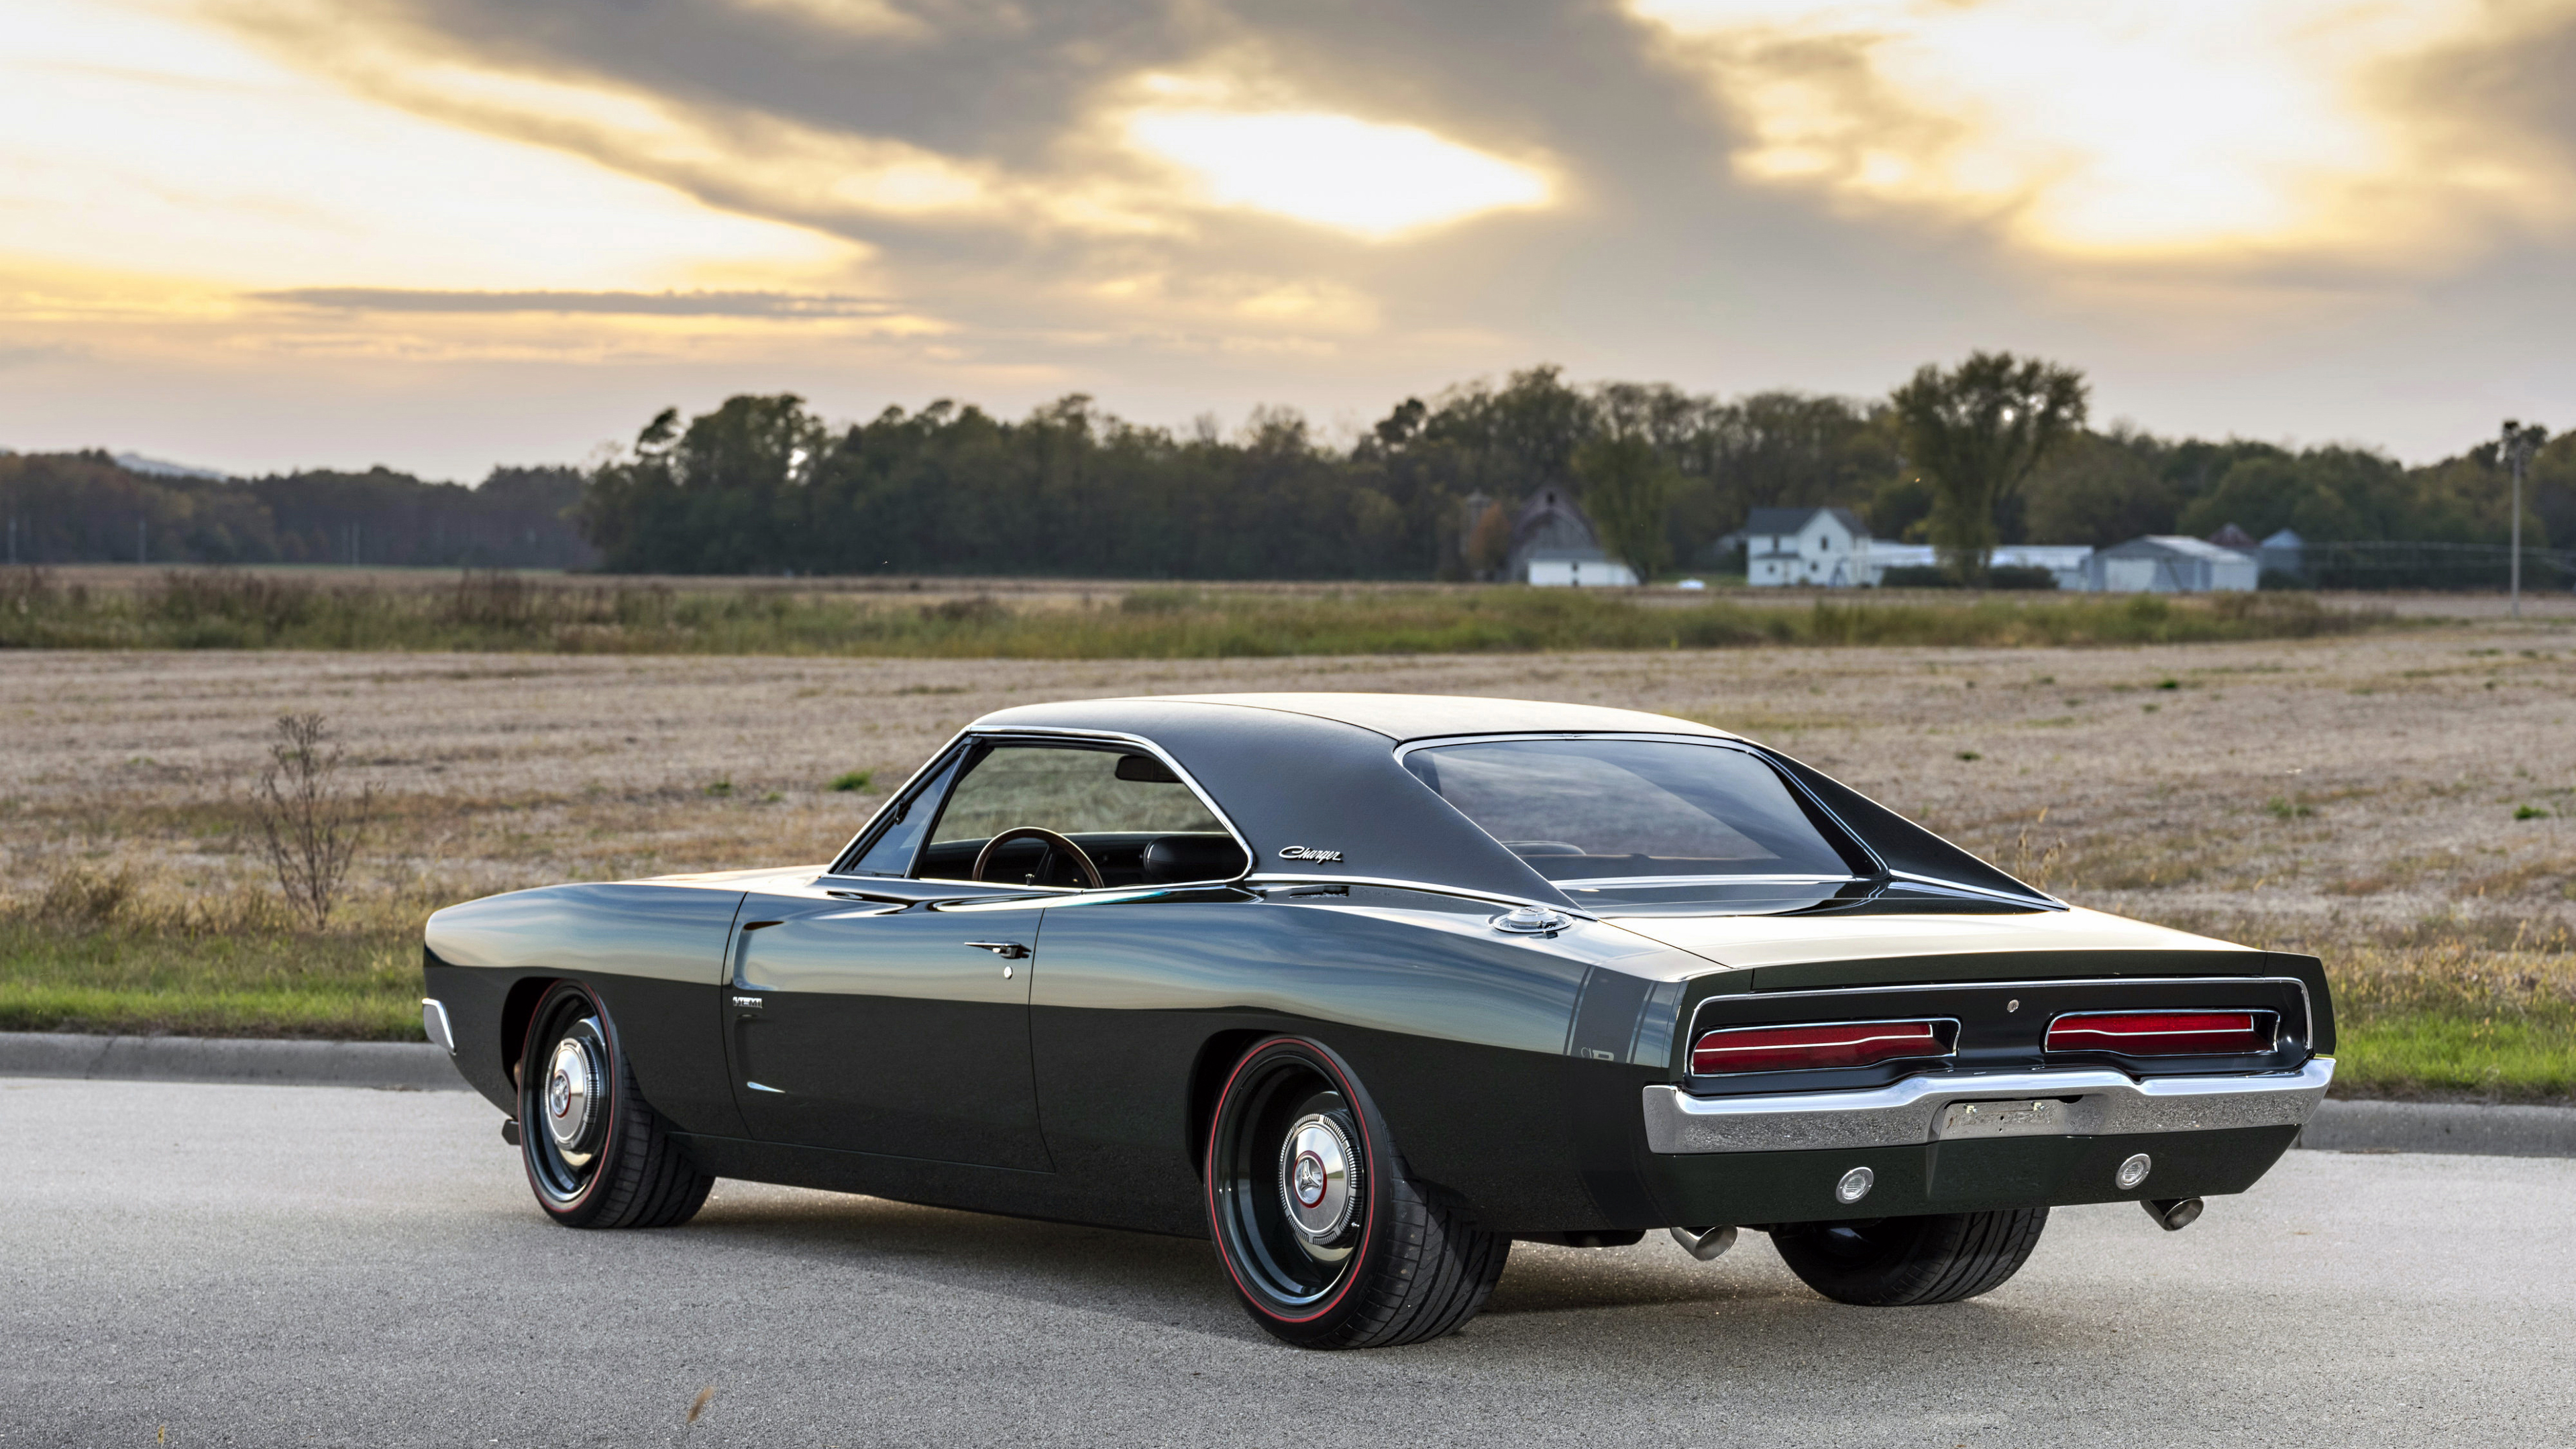 1969 ringbrothers dodge charger defector rear view 1539109169 - 1969 Ringbrothers Dodge Charger Defector Rear View - hd-wallpapers, dodge charger wallpapers, cars wallpapers, 4k-wallpapers